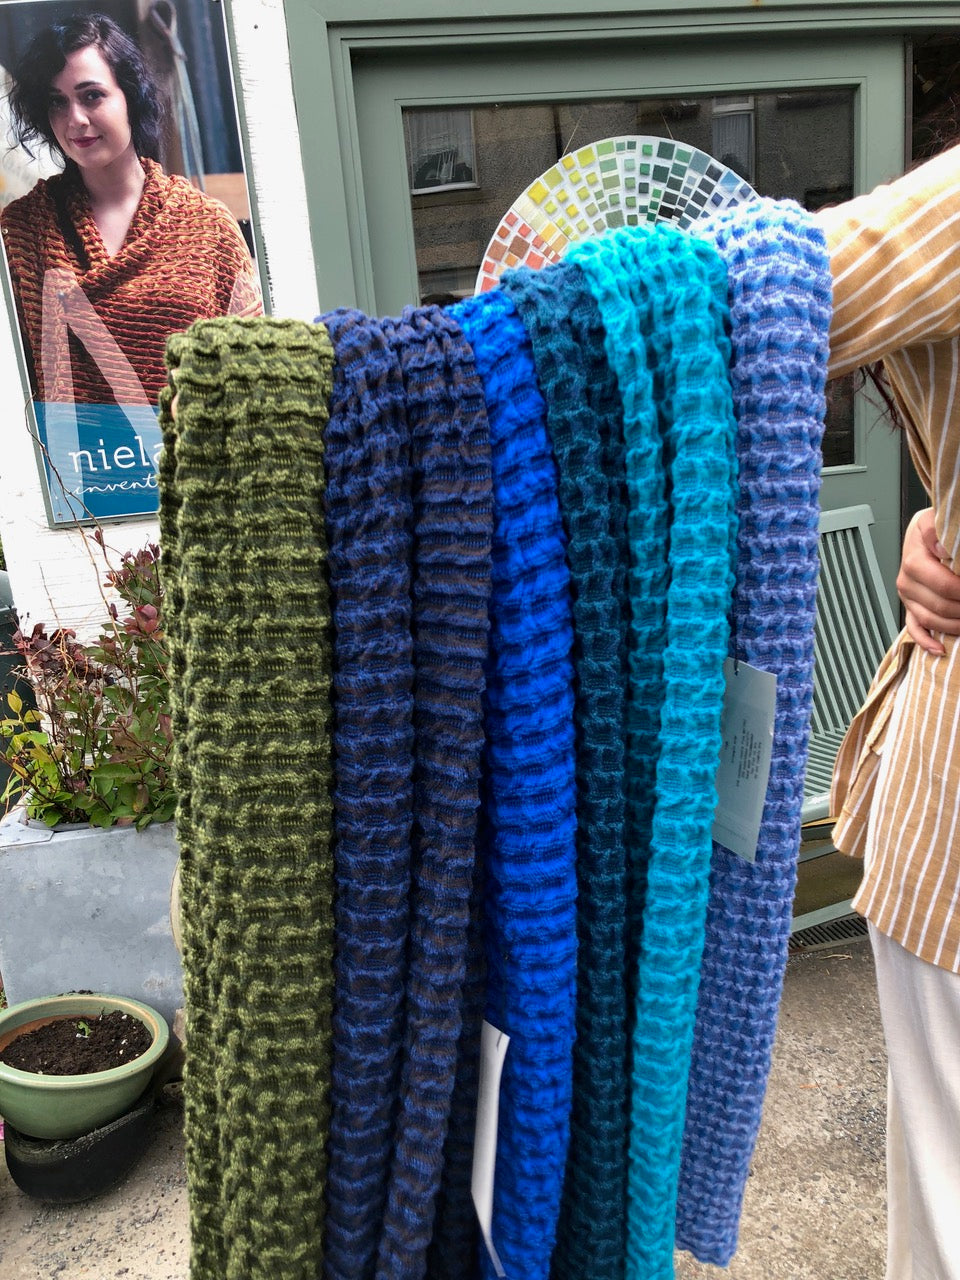 Holding out an armful of Rigg wrap scarves, outside the Nielanell contemporary knitwear studio, Shetland.